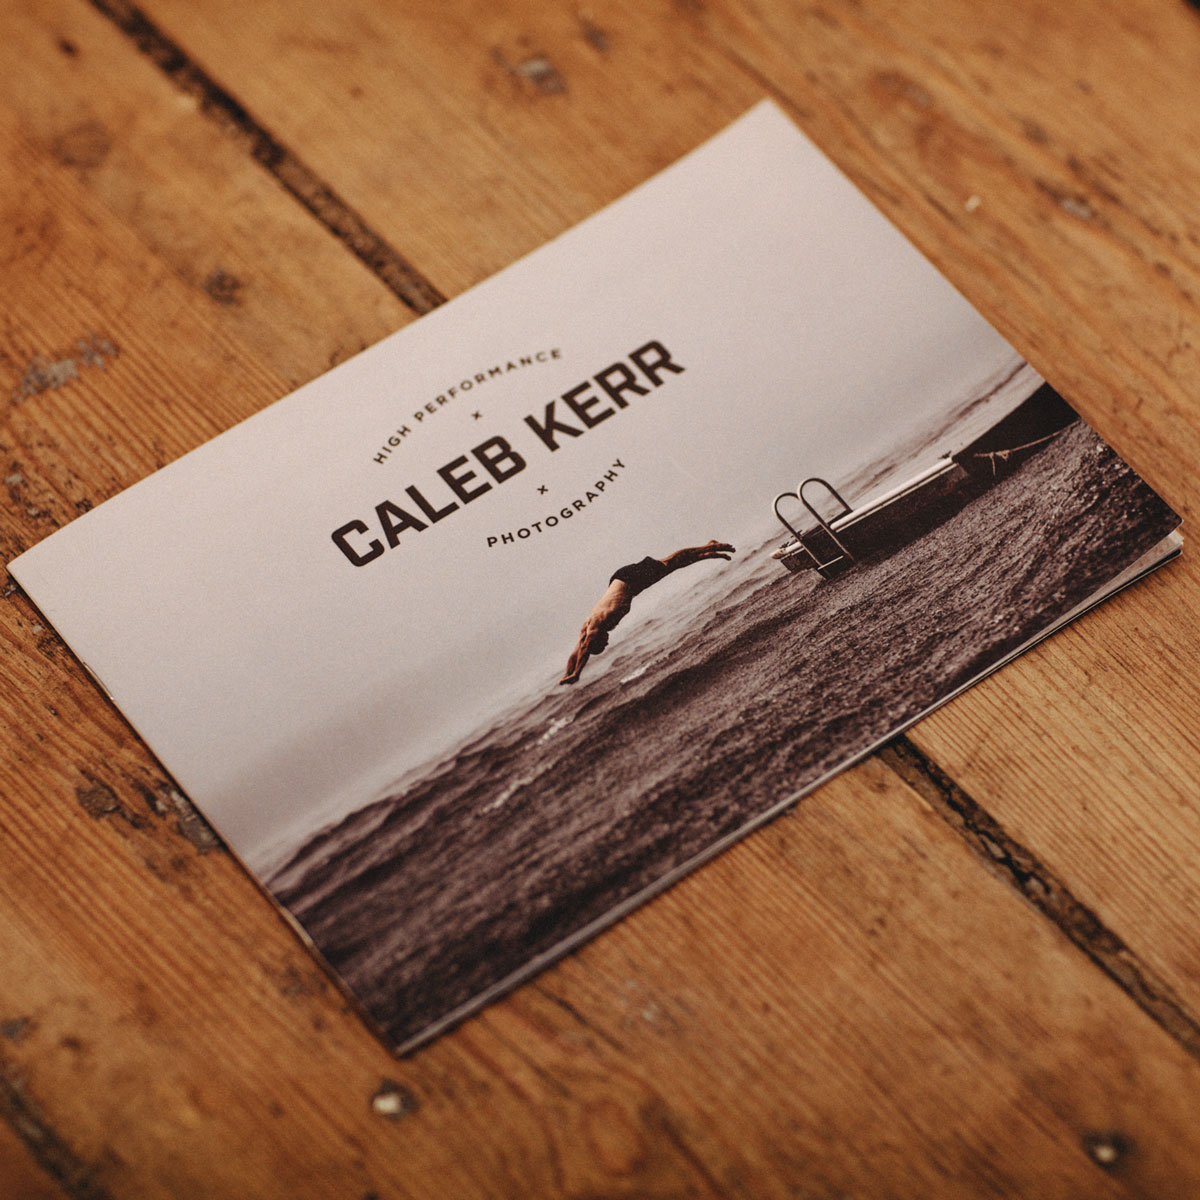 100 x A5 Landscape Brochures for £99